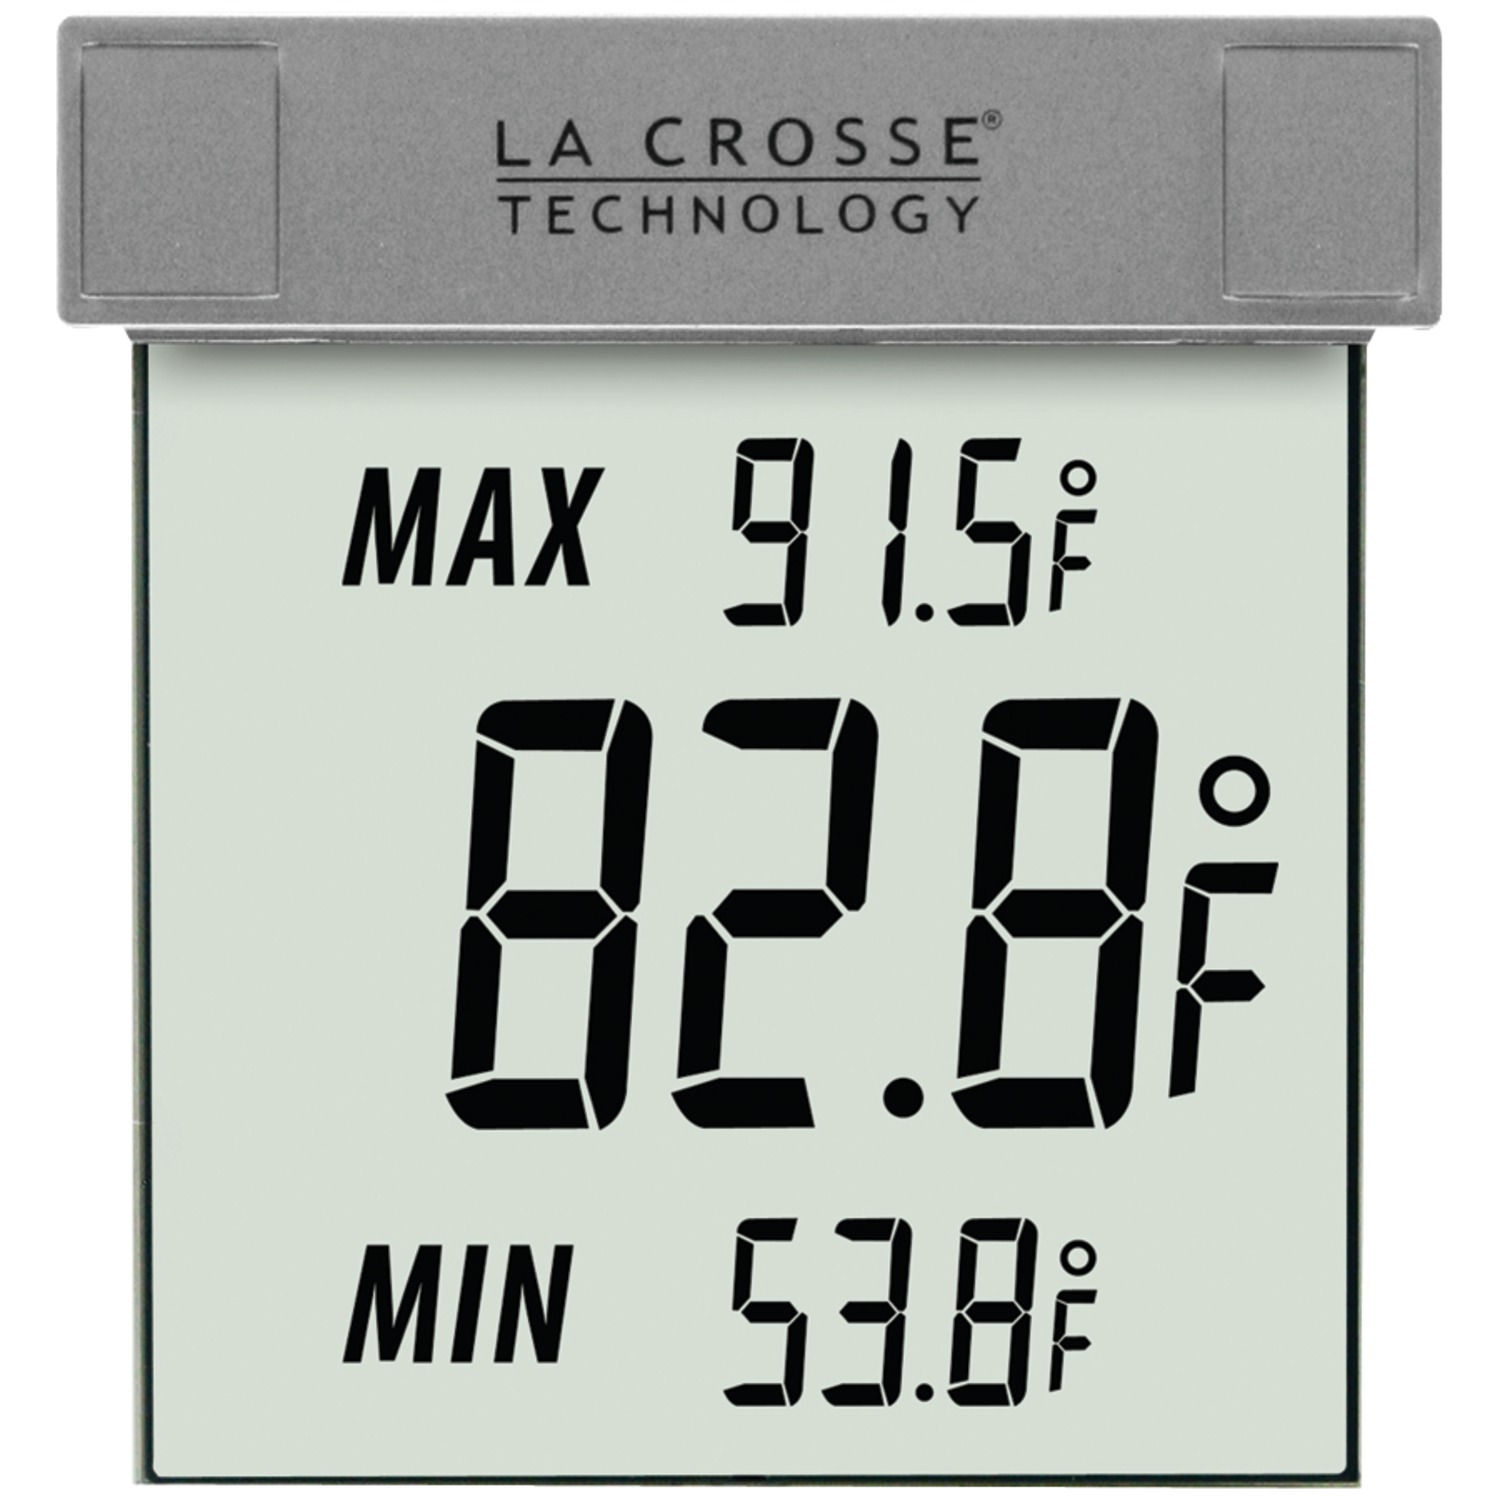 la crosse technology ws 1025 outdoor window thermometer. Black Bedroom Furniture Sets. Home Design Ideas